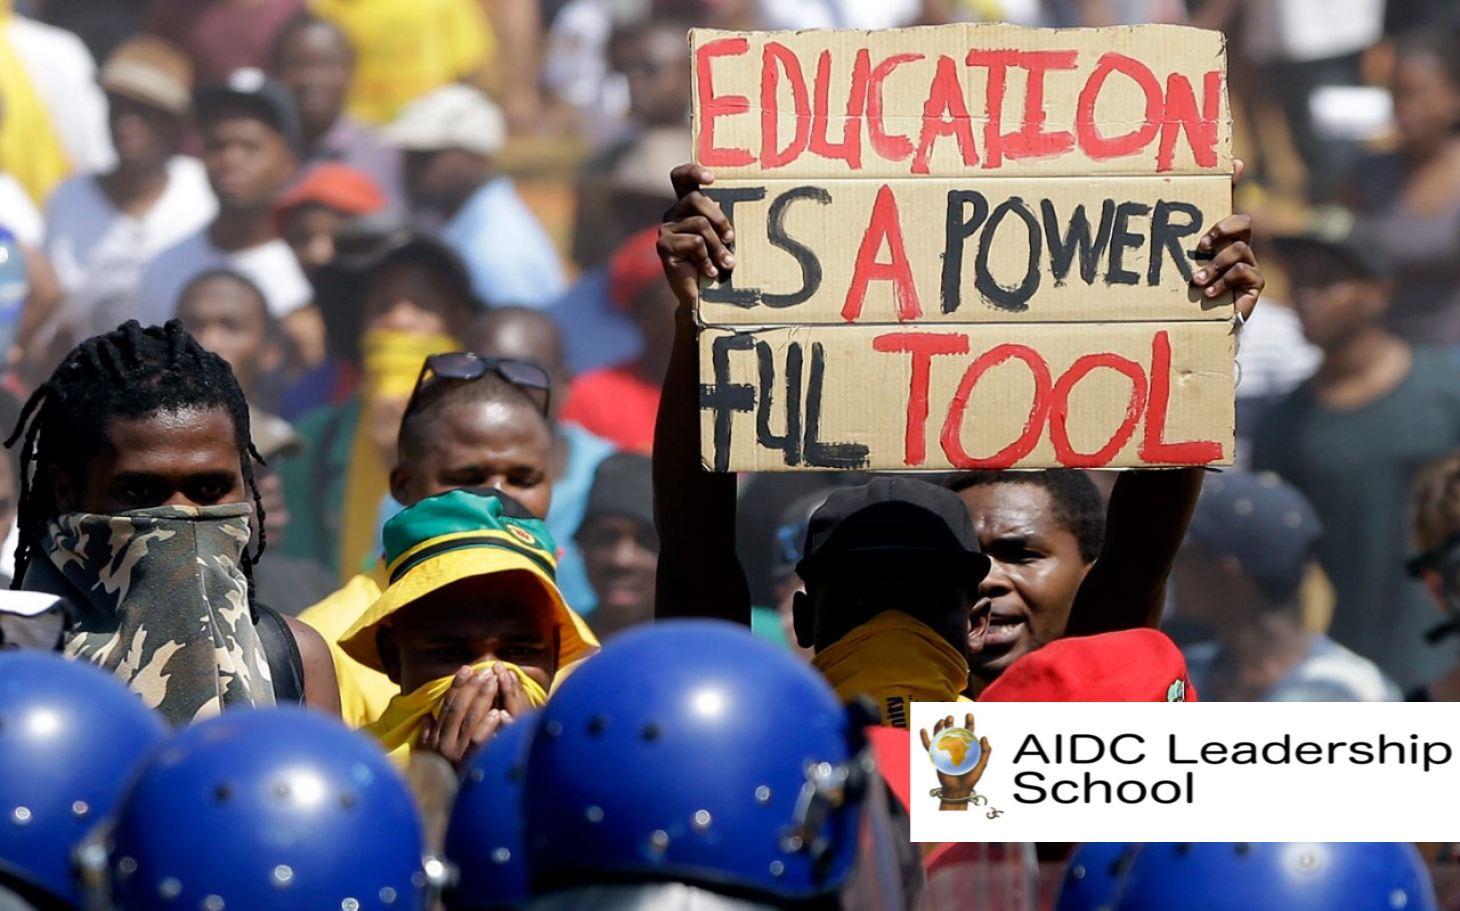 AIDC Leadership School Leading activists from social movements across South African will converge Read More